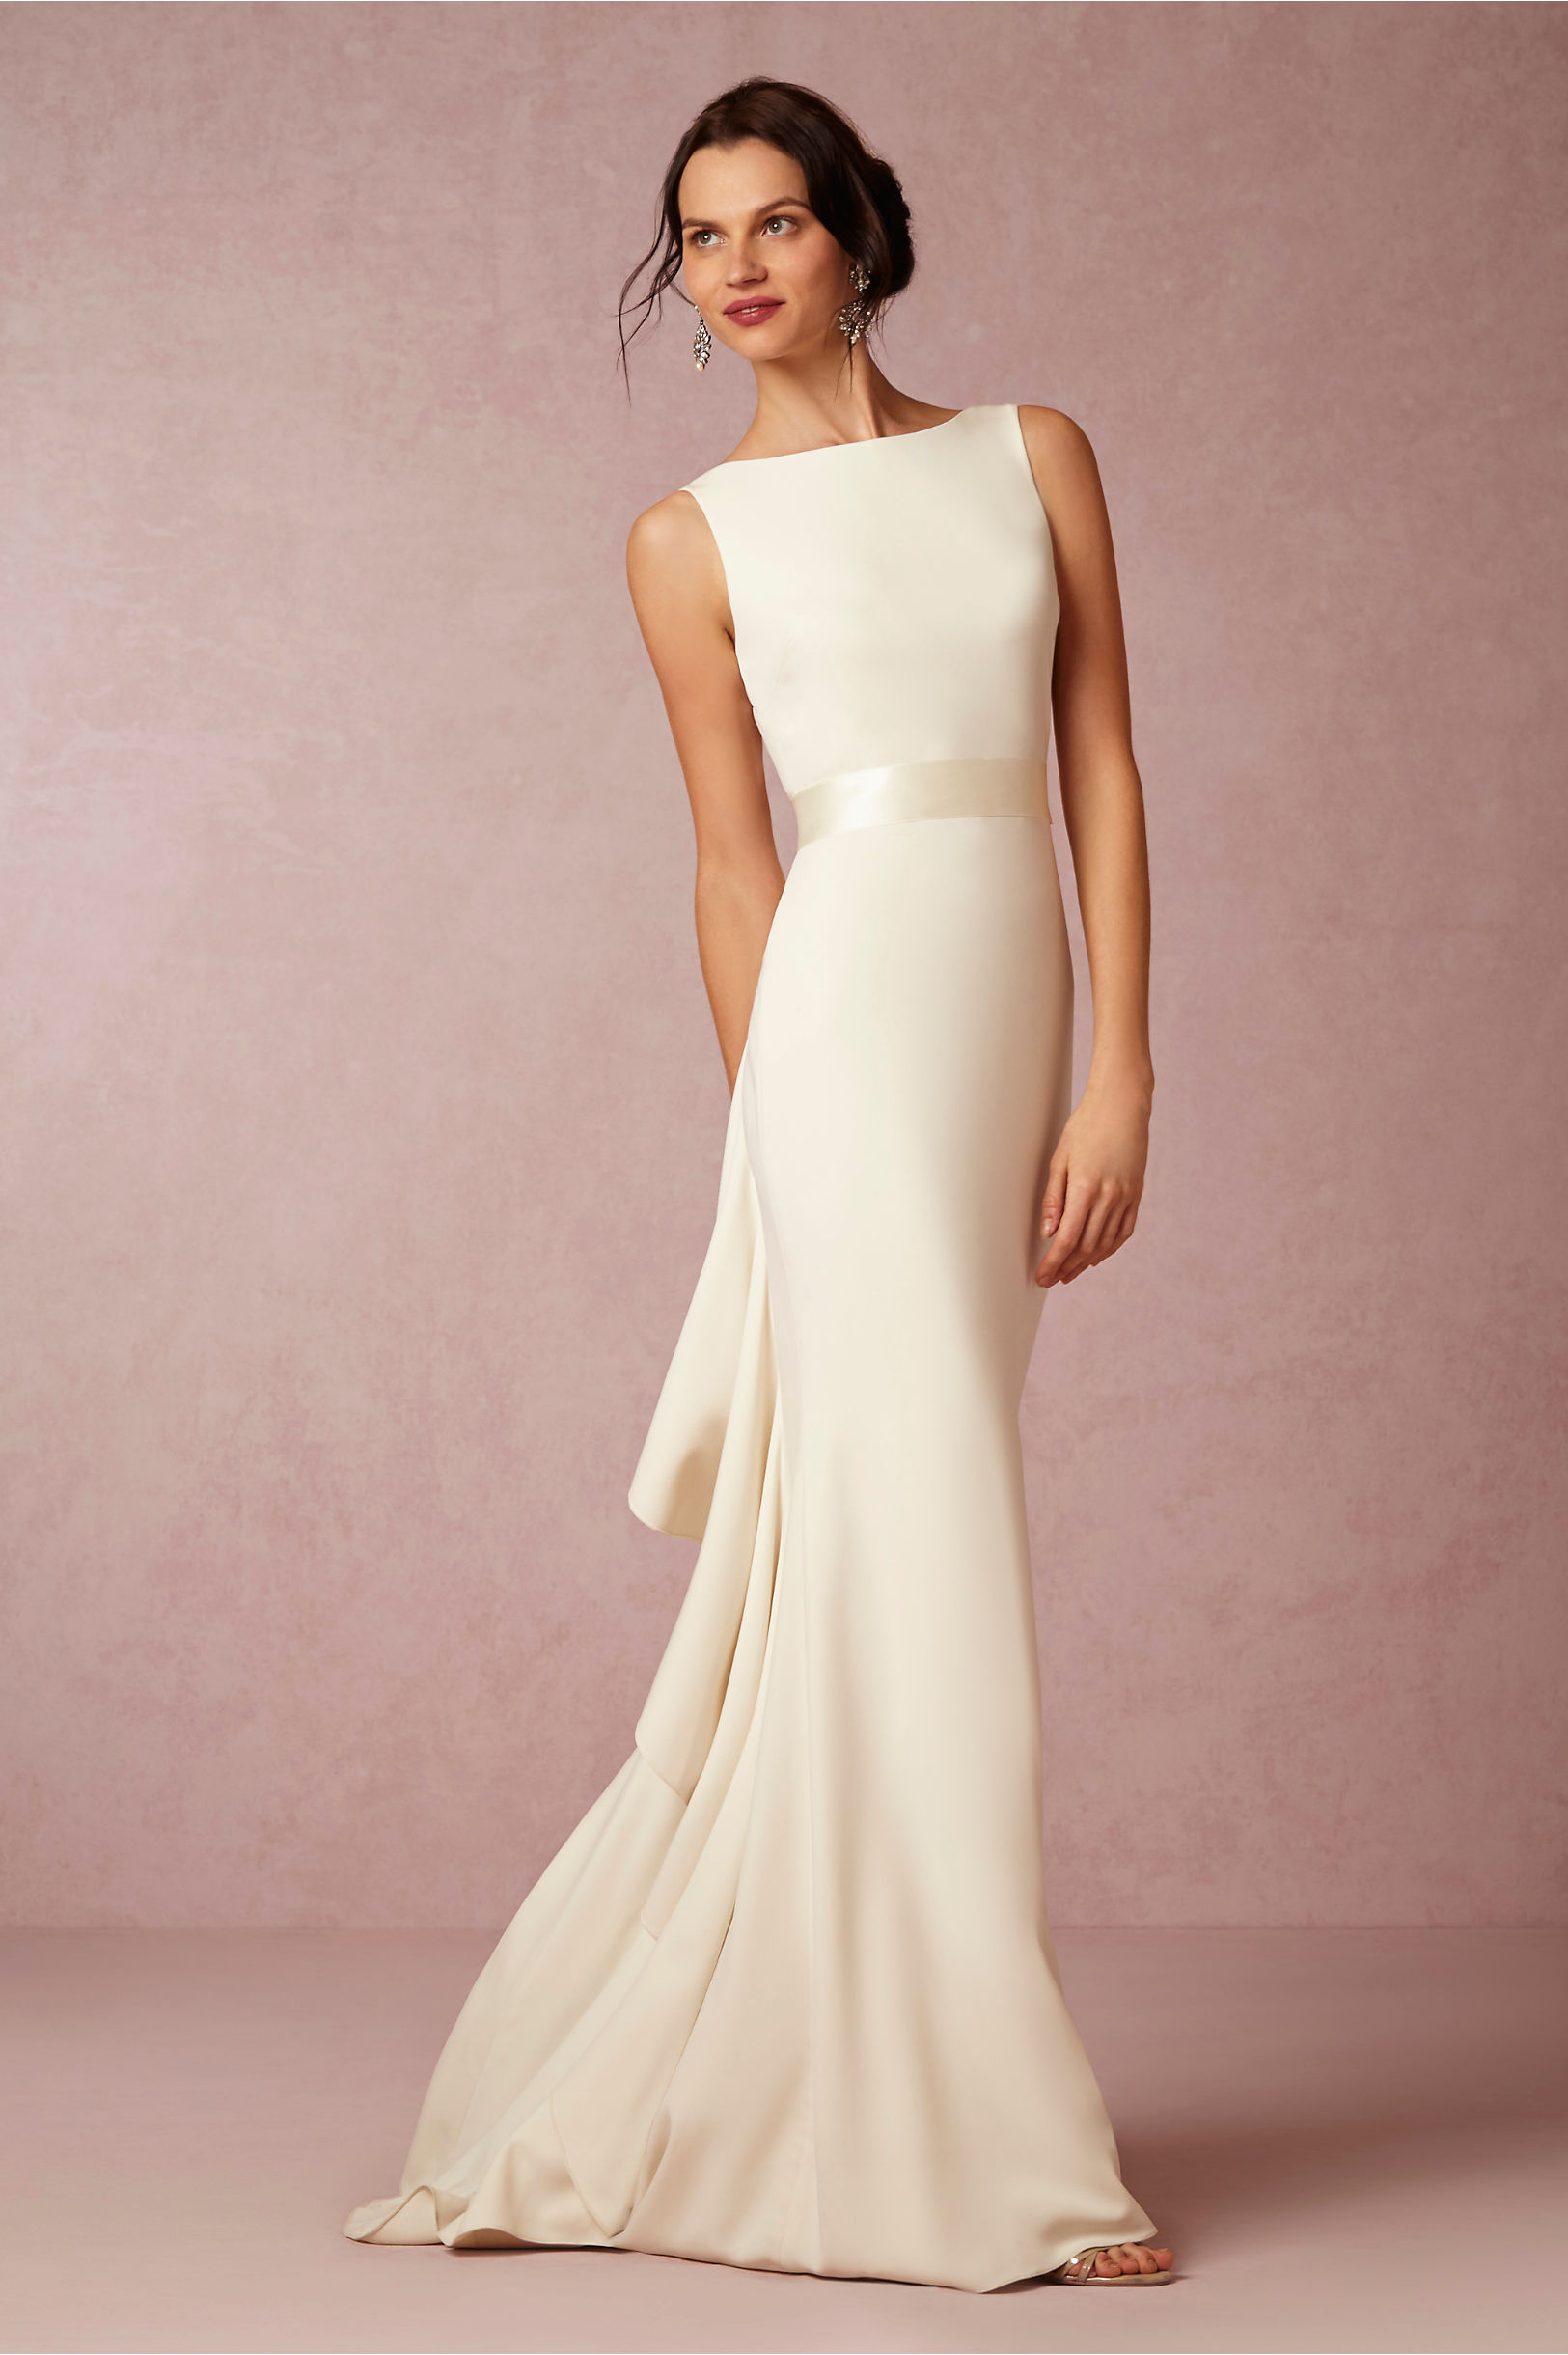 20 Best Choices of Sheath Wedding Dress   EverAfterGuide BHLDN Valentina Gown with Sheer Elegance